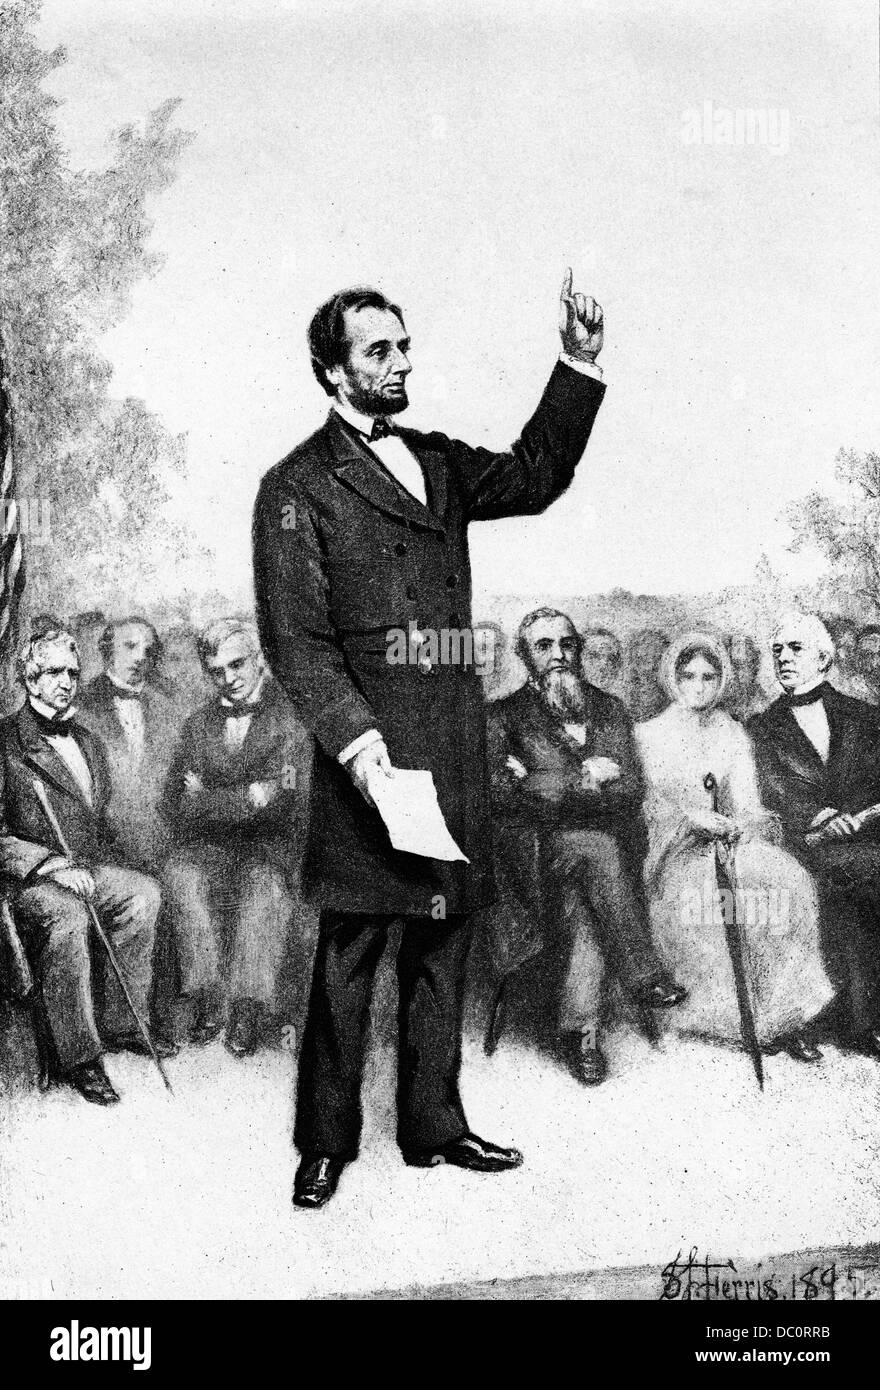 1800s 1860s NOVEMBER 19 1863 ABRAHAM LINCOLN DELIVERING GETTYSBURG ADDRESS AT DEDICATION OF SOLDIERS NATIONAL CEMETERY Stock Photo